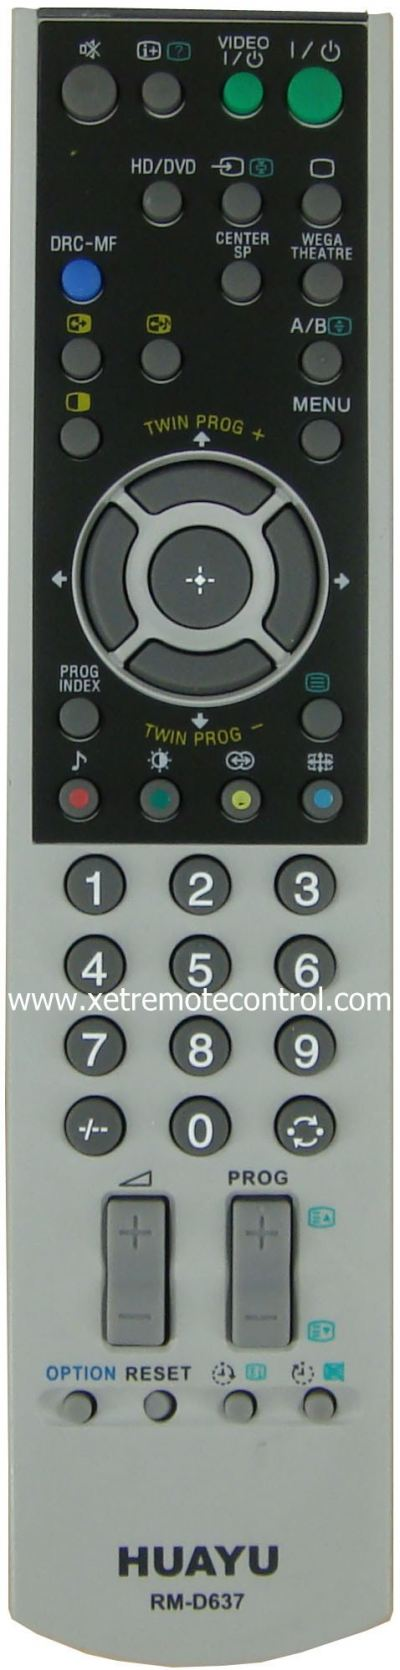 RM-D637 SONY LCD/LED TV REMOTE CONTROL